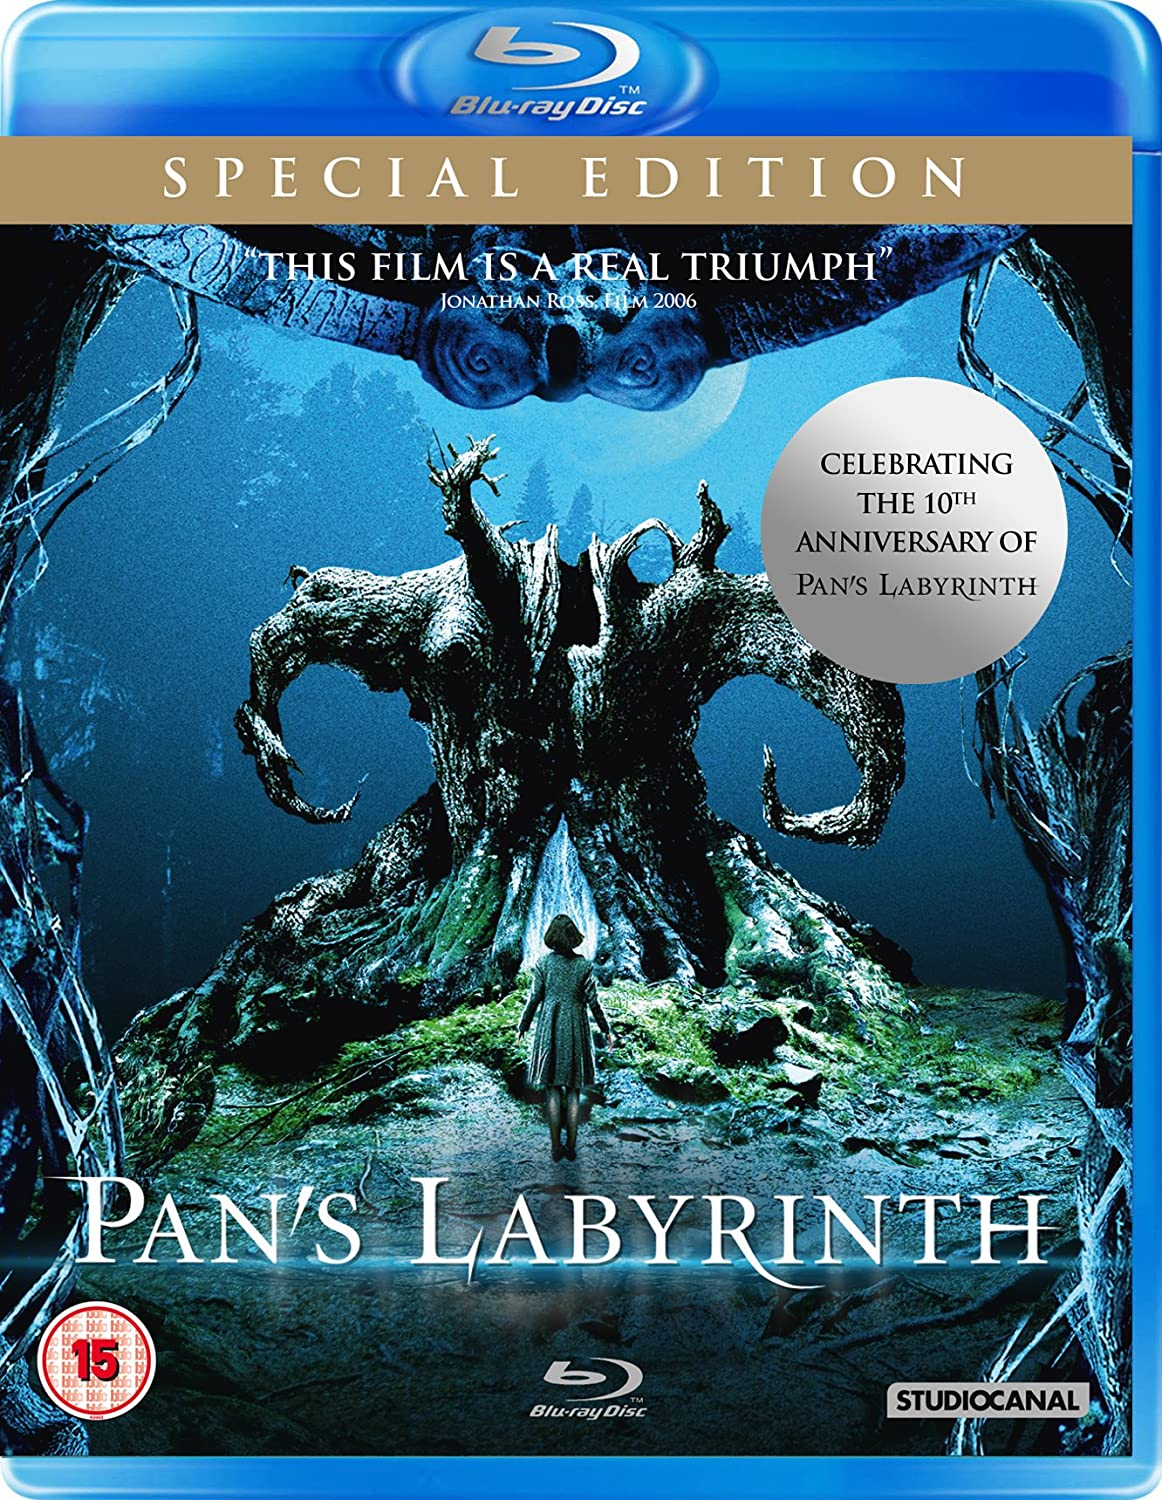 Pan's Labyrinth (Special Edition) [Blu-ray] [Region2] Requires a Multi Region Player